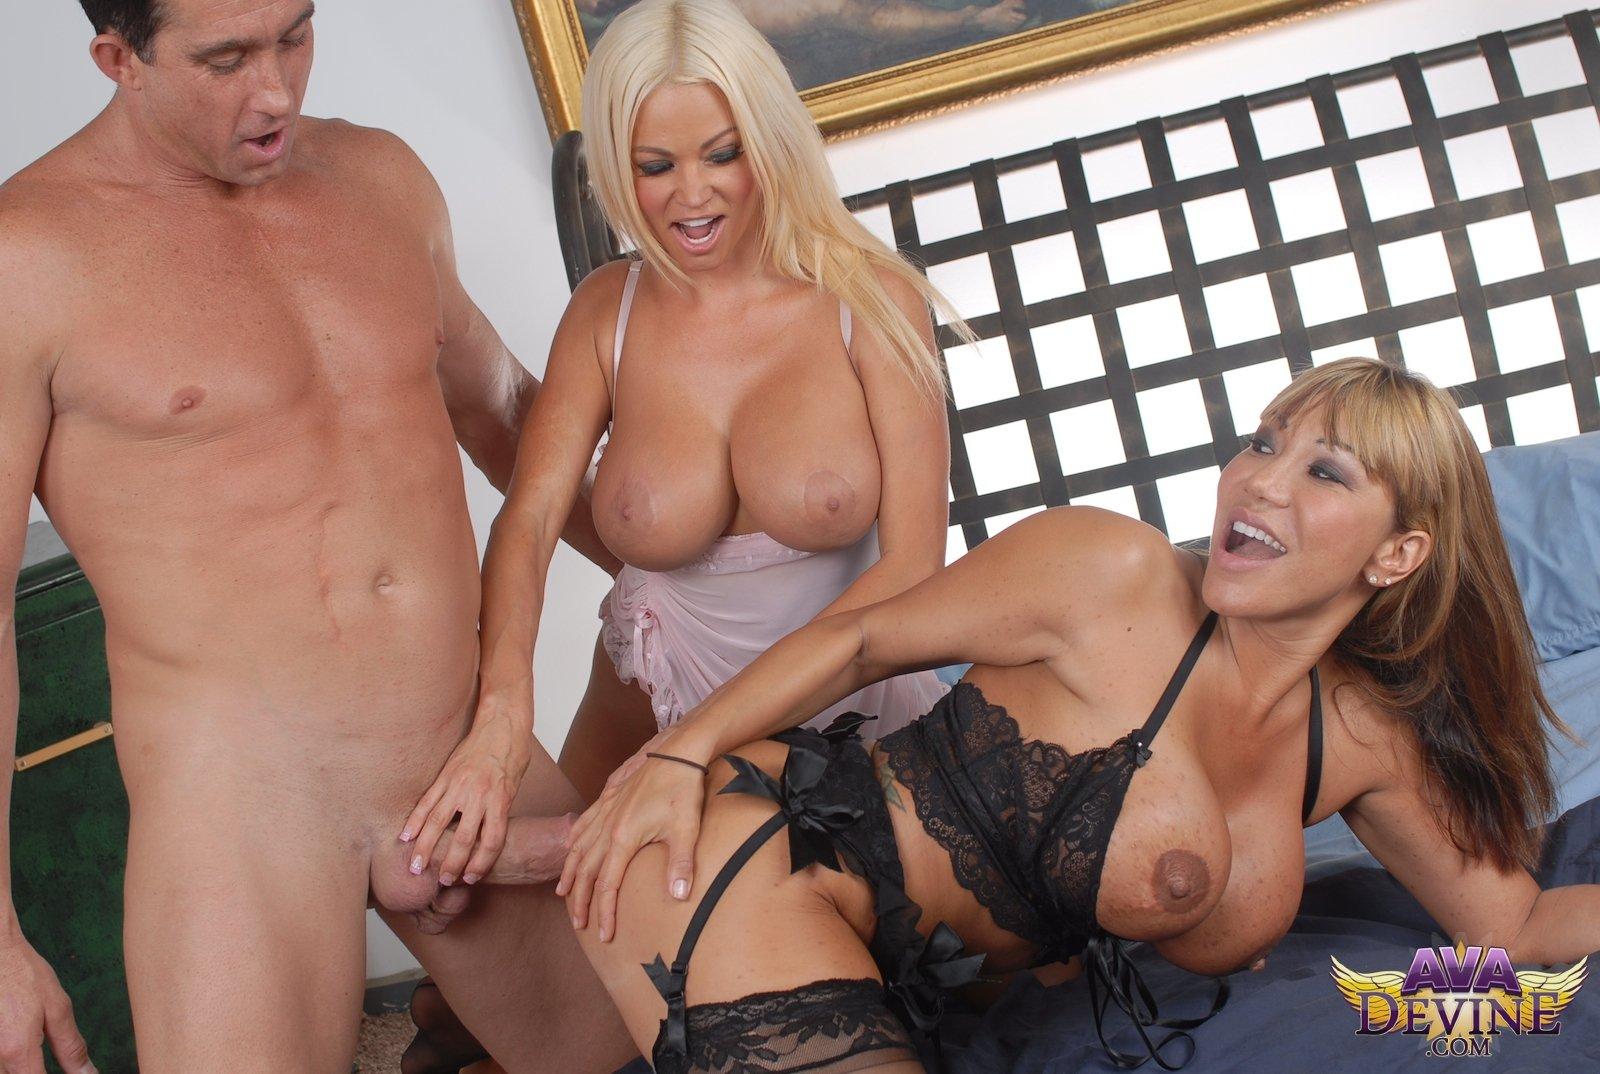 Mature big titts pictures #6